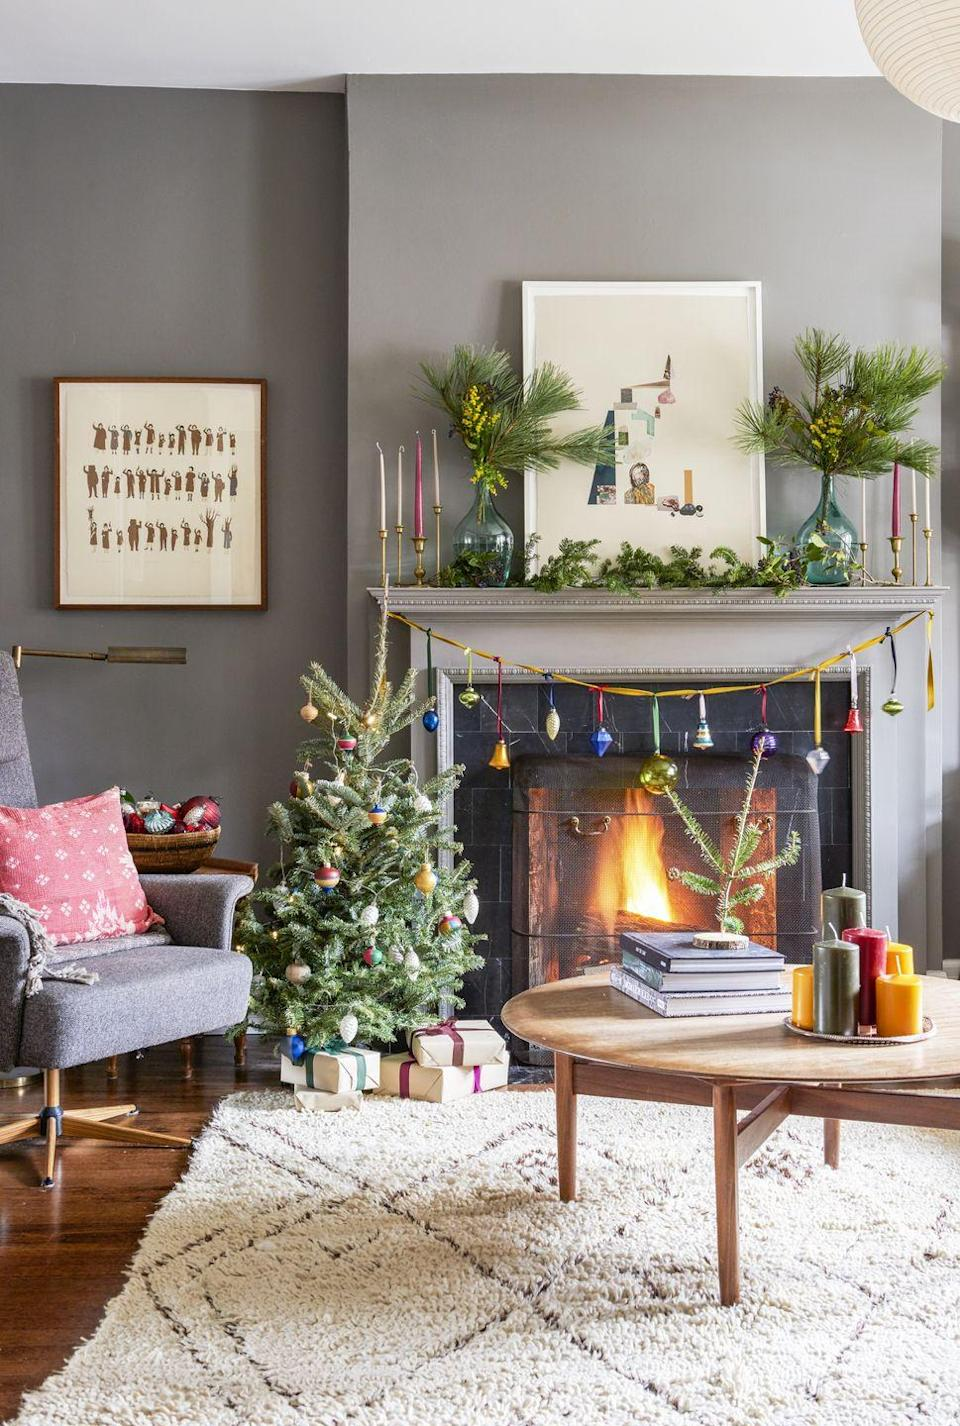 """<p><span class=""""redactor-invisible-space"""">Dress this pint-size version with just as much garland, ribbon, and ornaments as you'd like.</span><br></p>"""